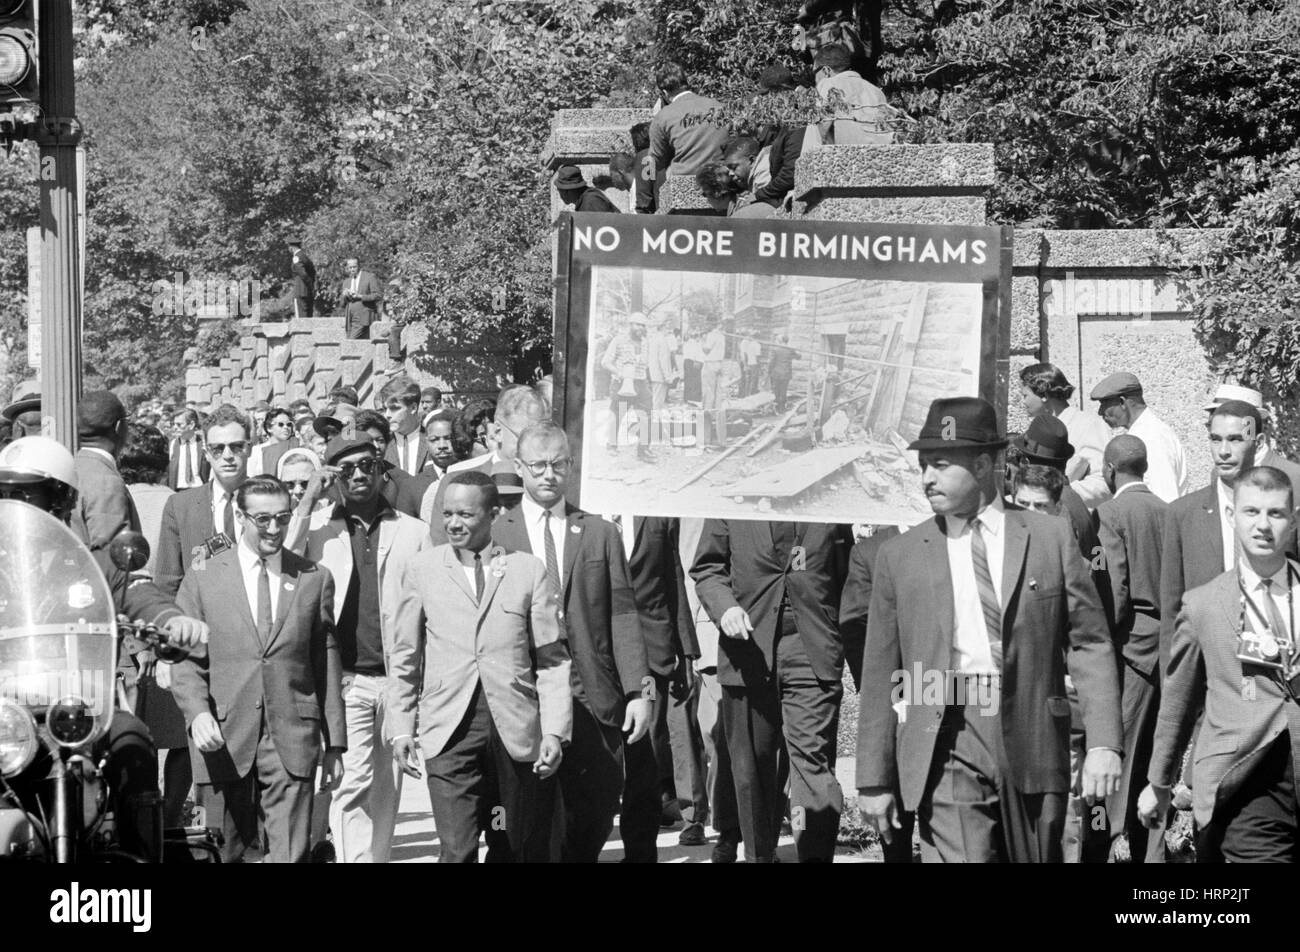 CORE Protests Birmingham Bombings, 1963 - Stock Image